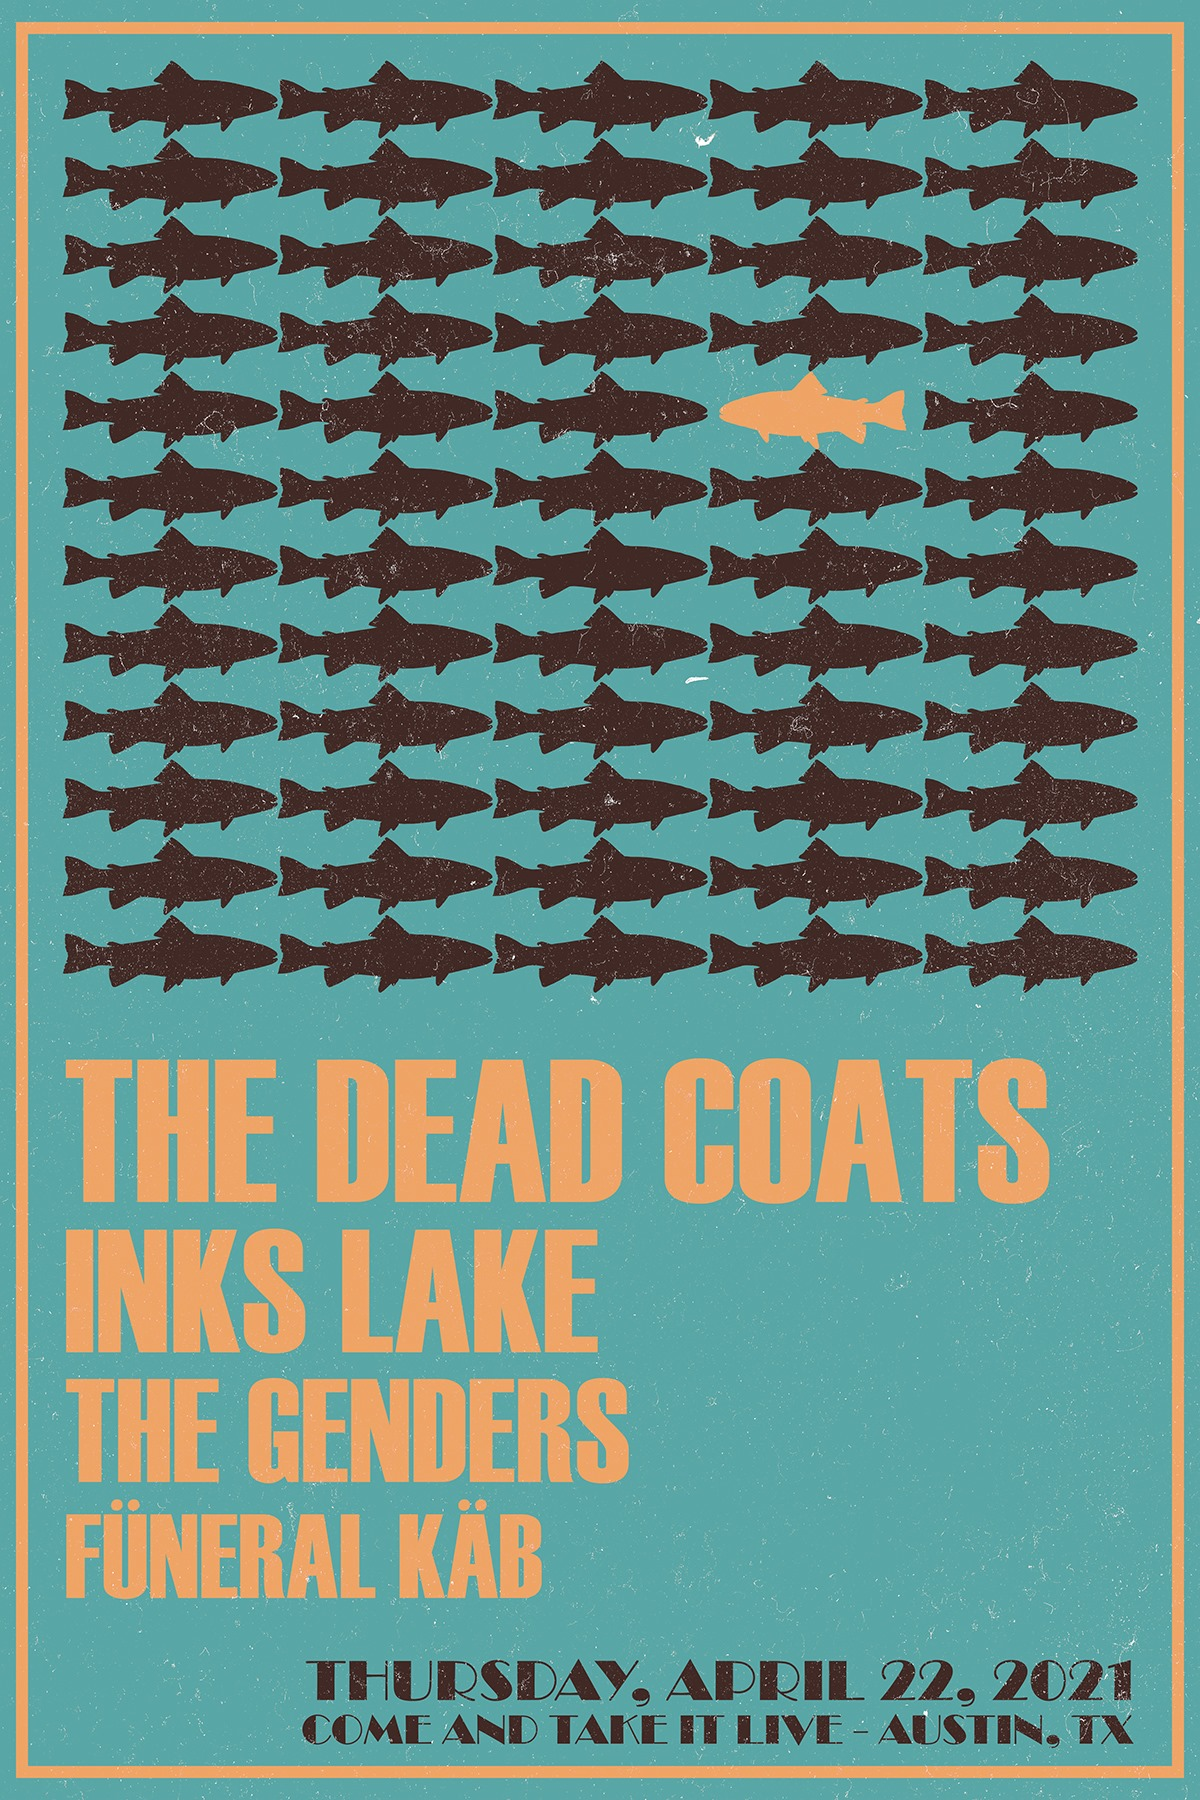 The Dead Coats, Inks Lake, The Genders and Füneral Käb